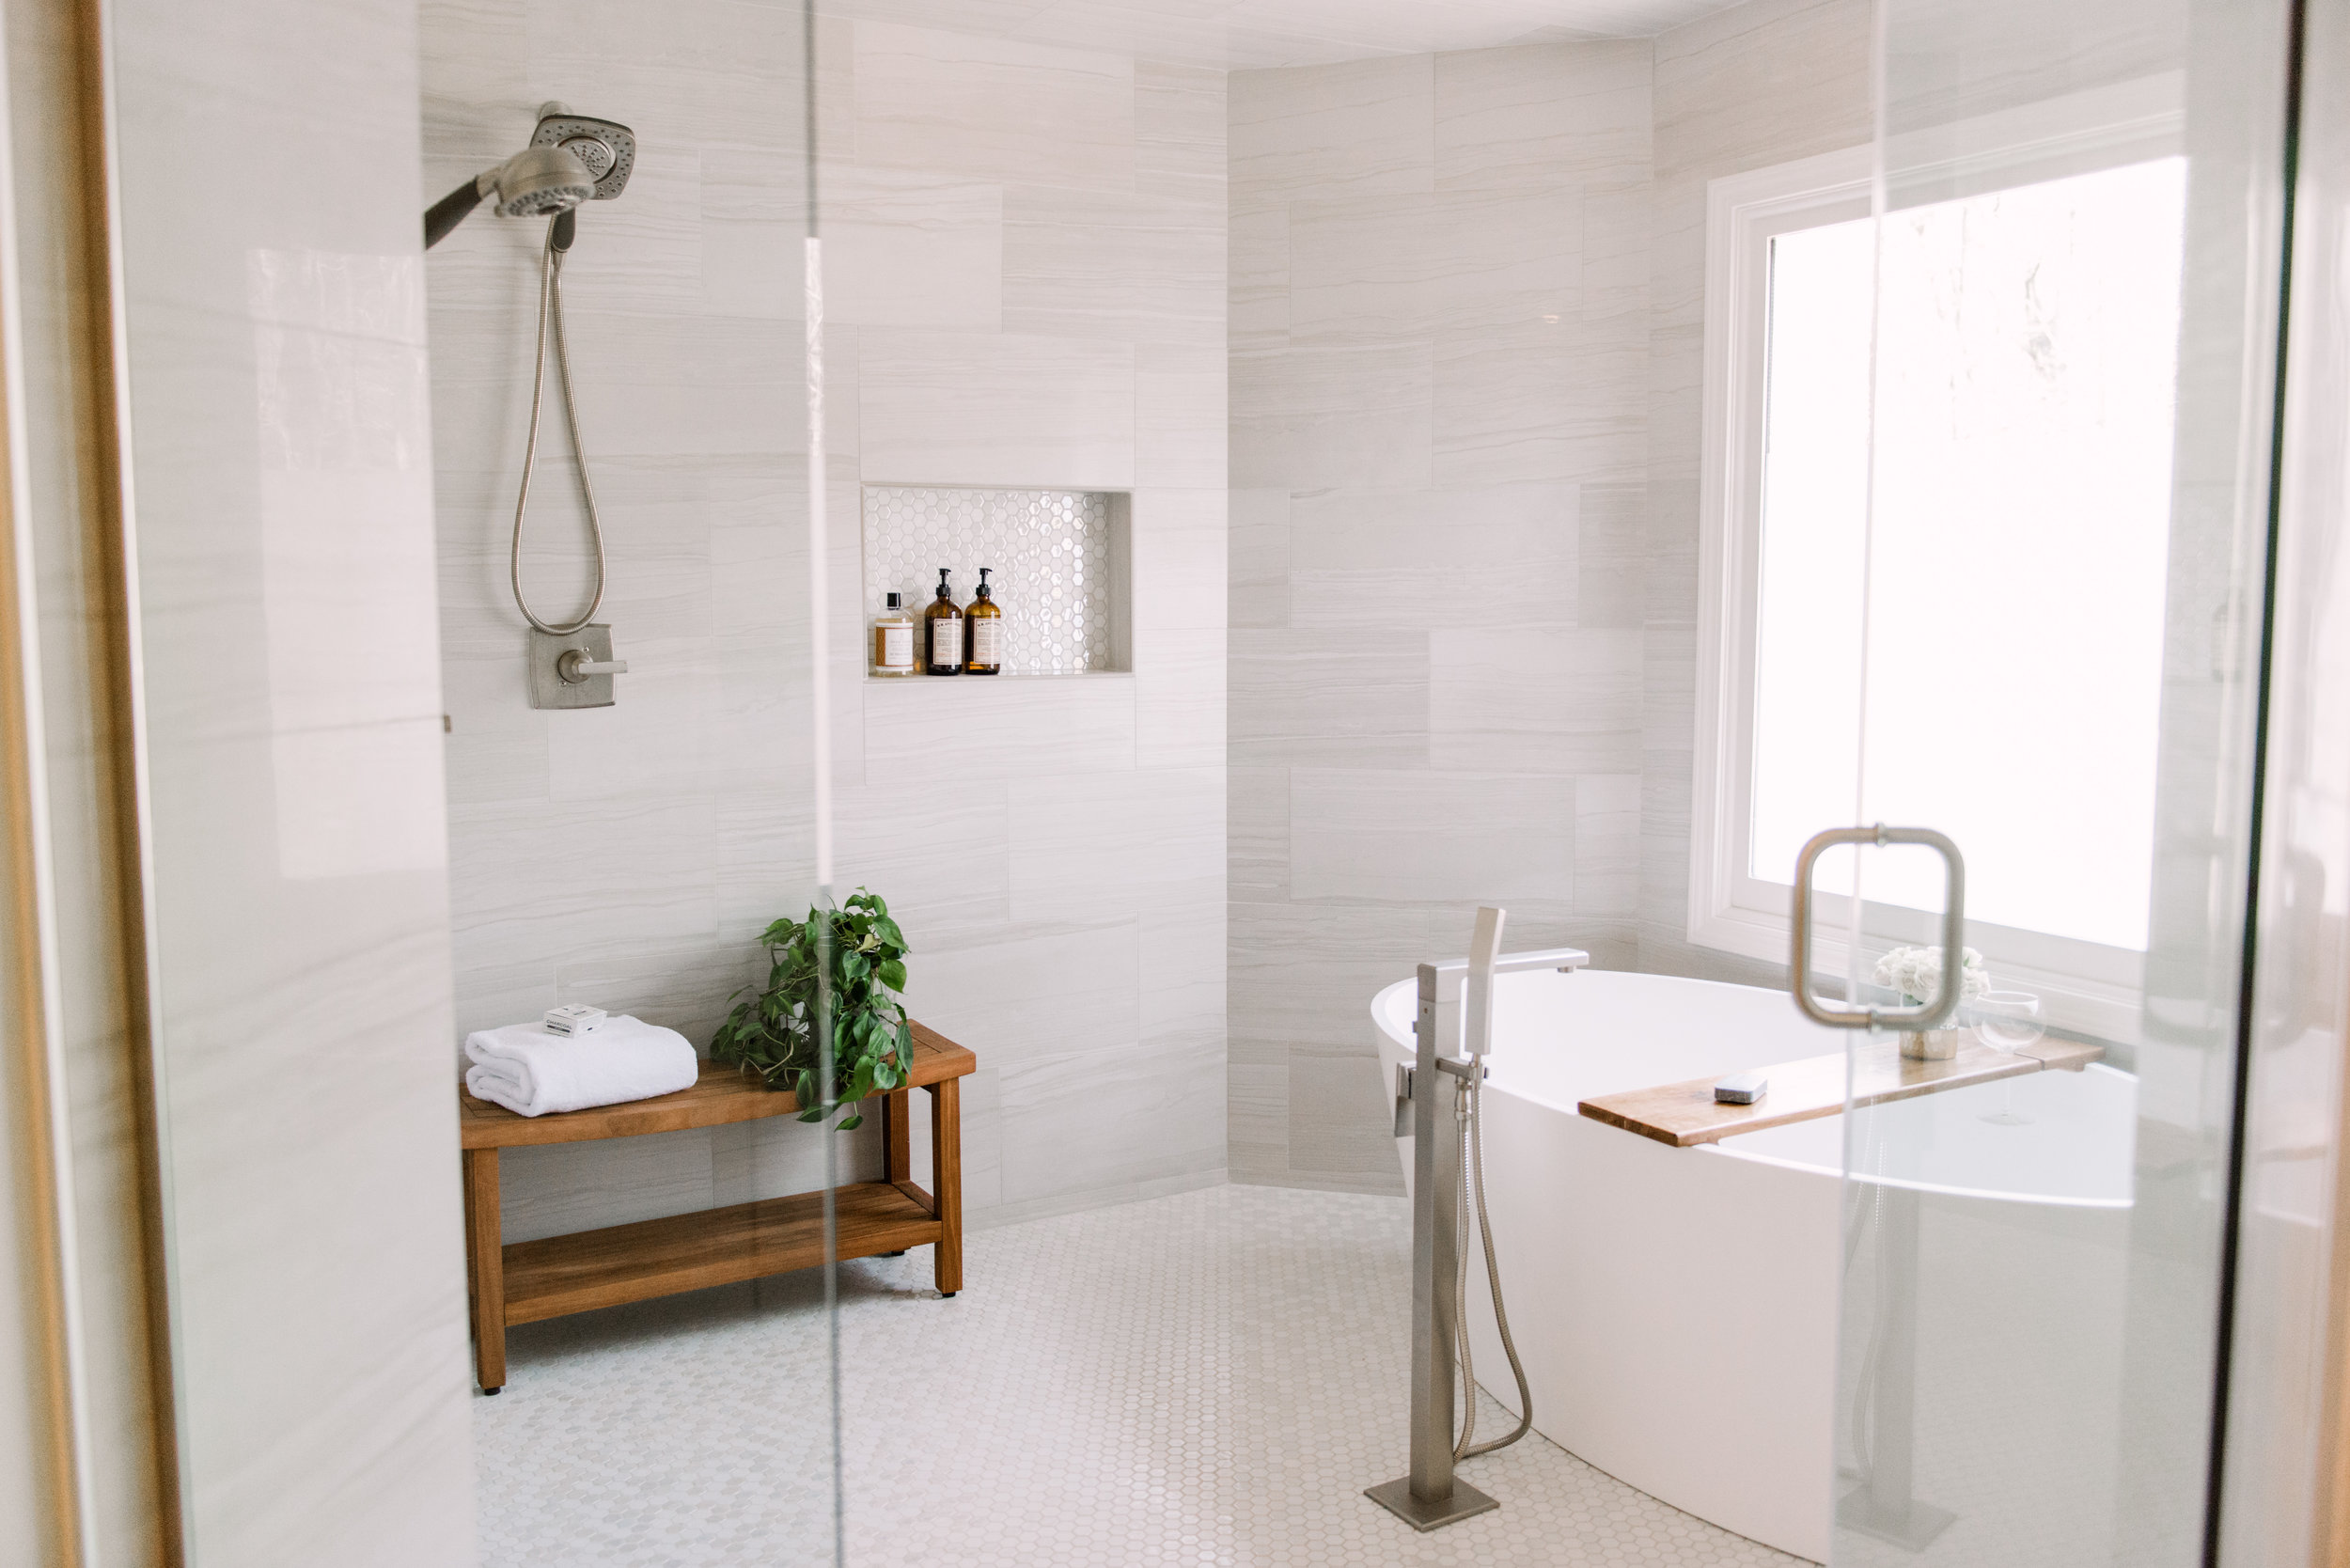 Bathroom designed by Katrina Porter Designs. Photographed by Paula Coldiron.